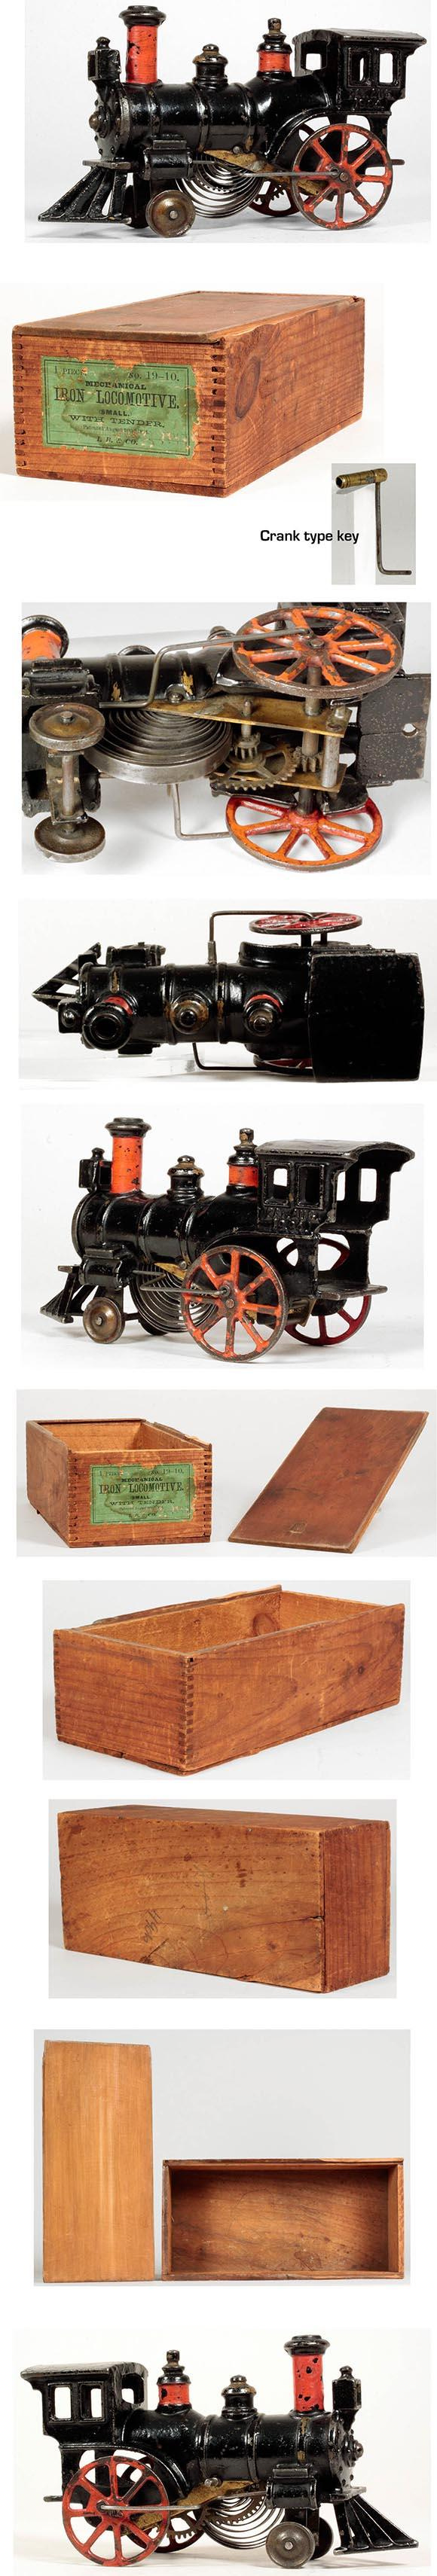 c.1884 Ives, CI Clockwork Locomotive in Original Wooden Box